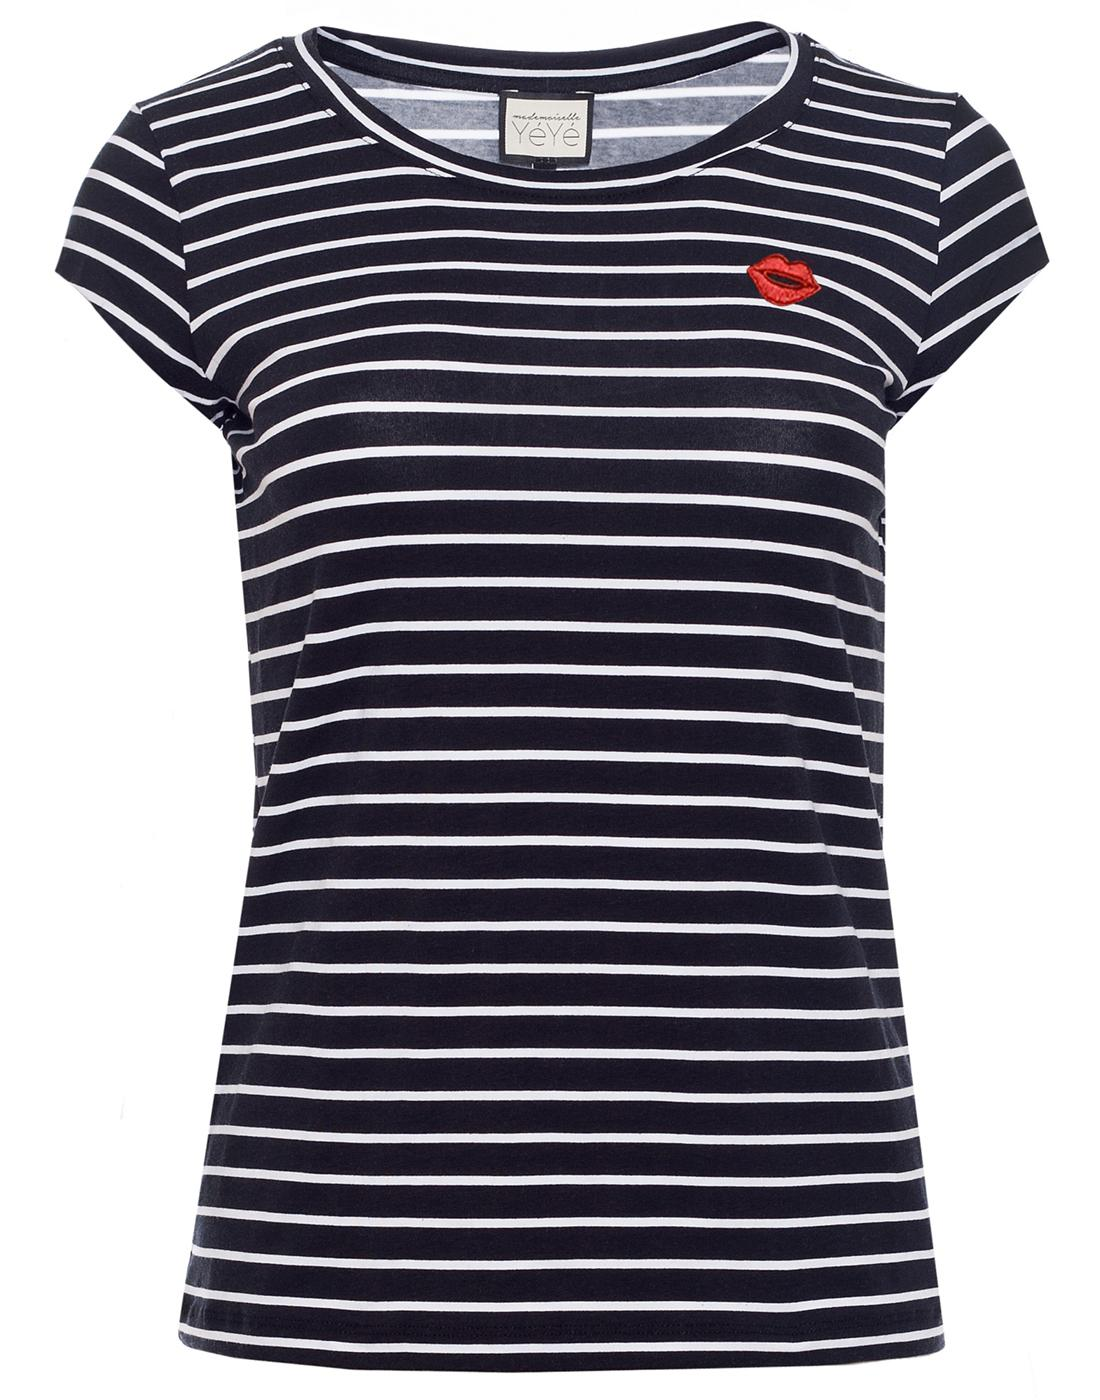 Tabea MADEMOISELLE YEYE Mod Nautical Stripe Top